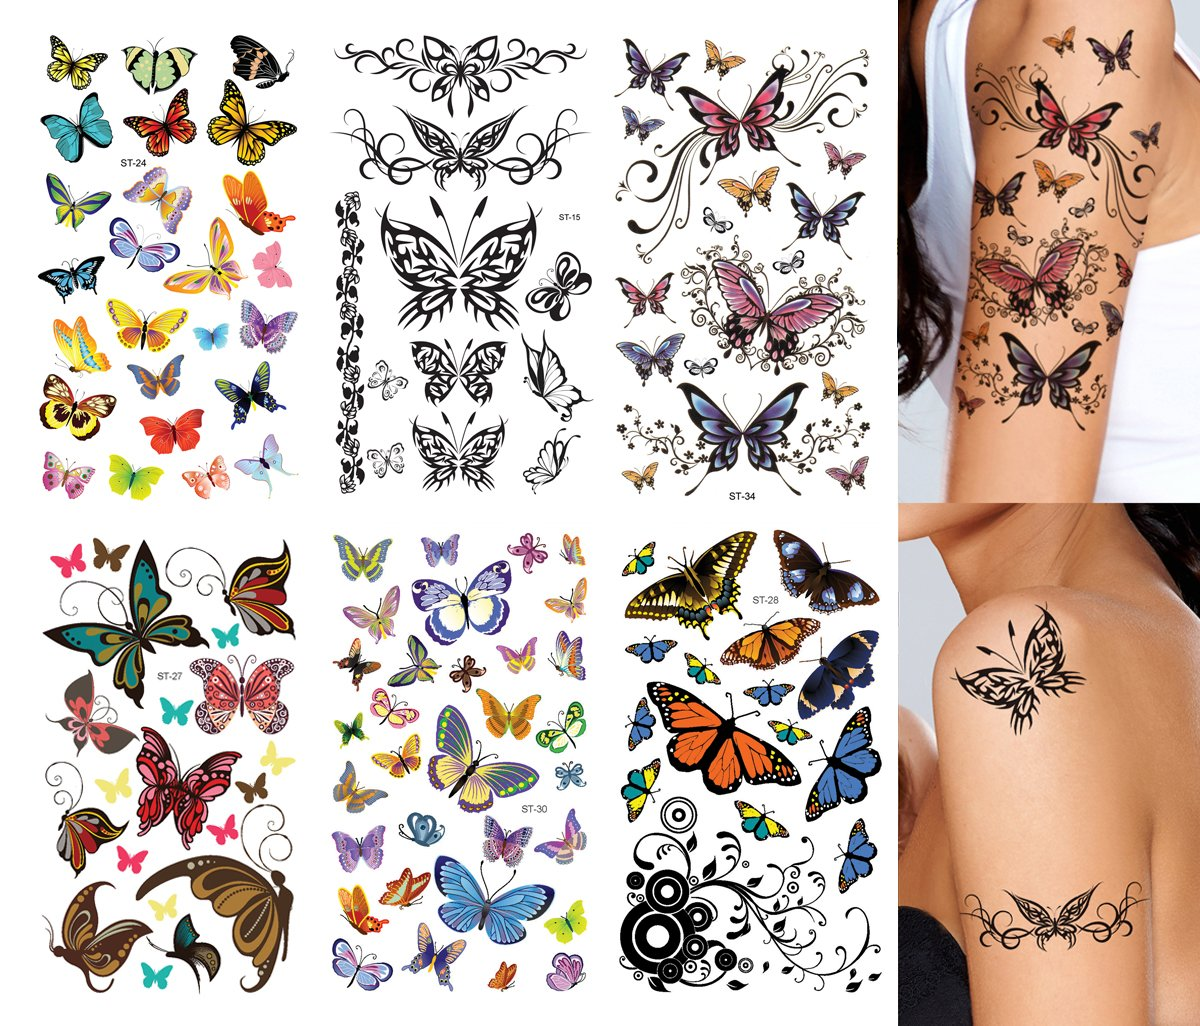 Supperb Butterfly Temporary Tattoos/6-pack